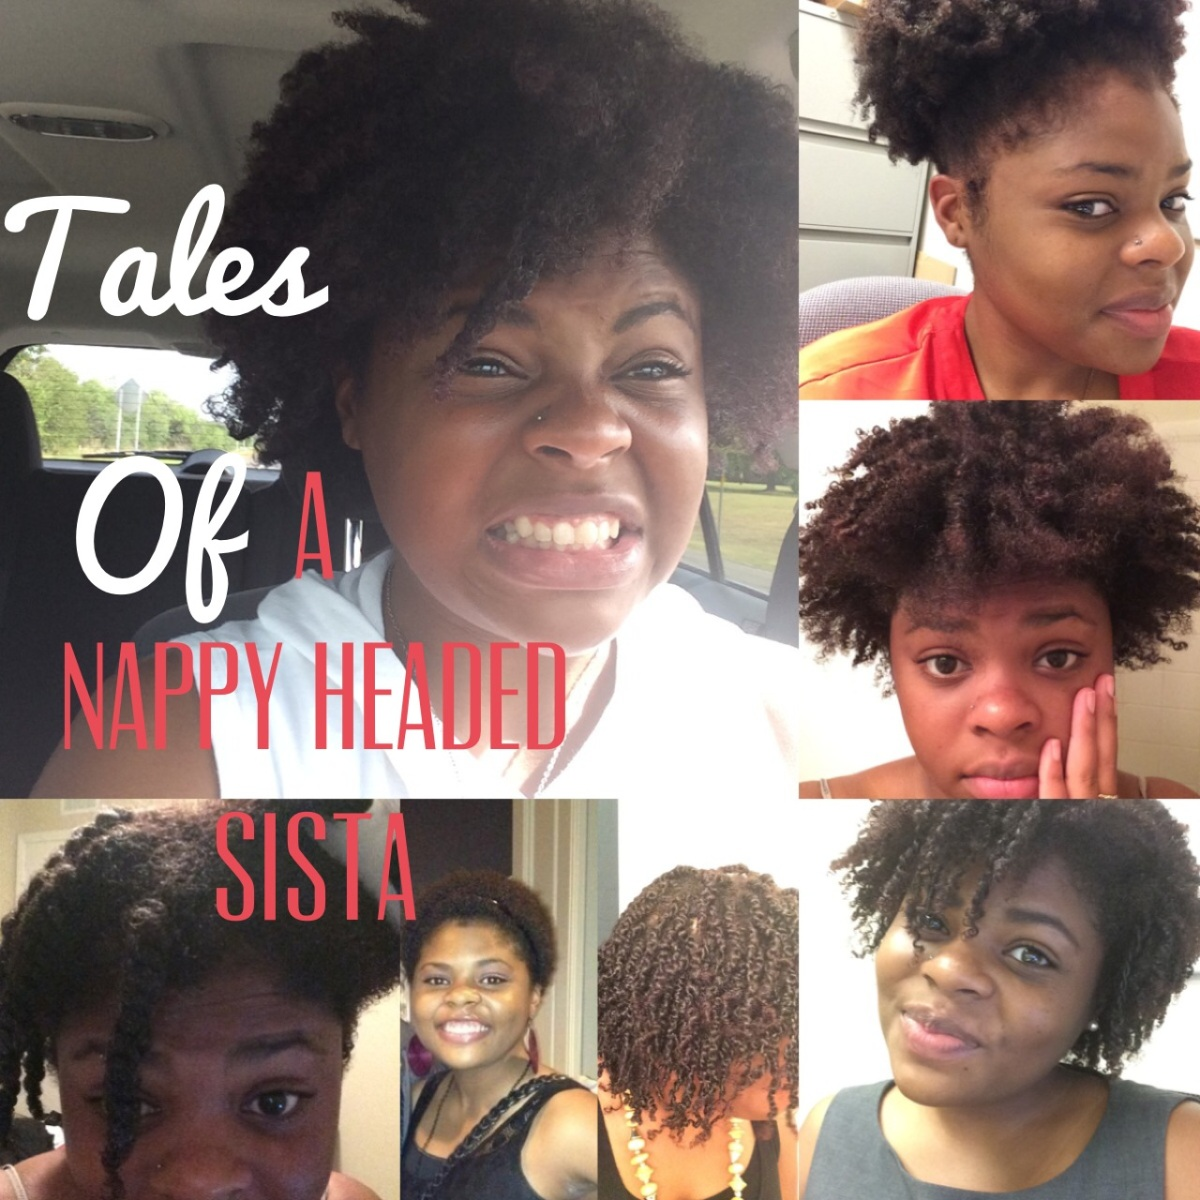 Tales of a Nappy Headed Sista.